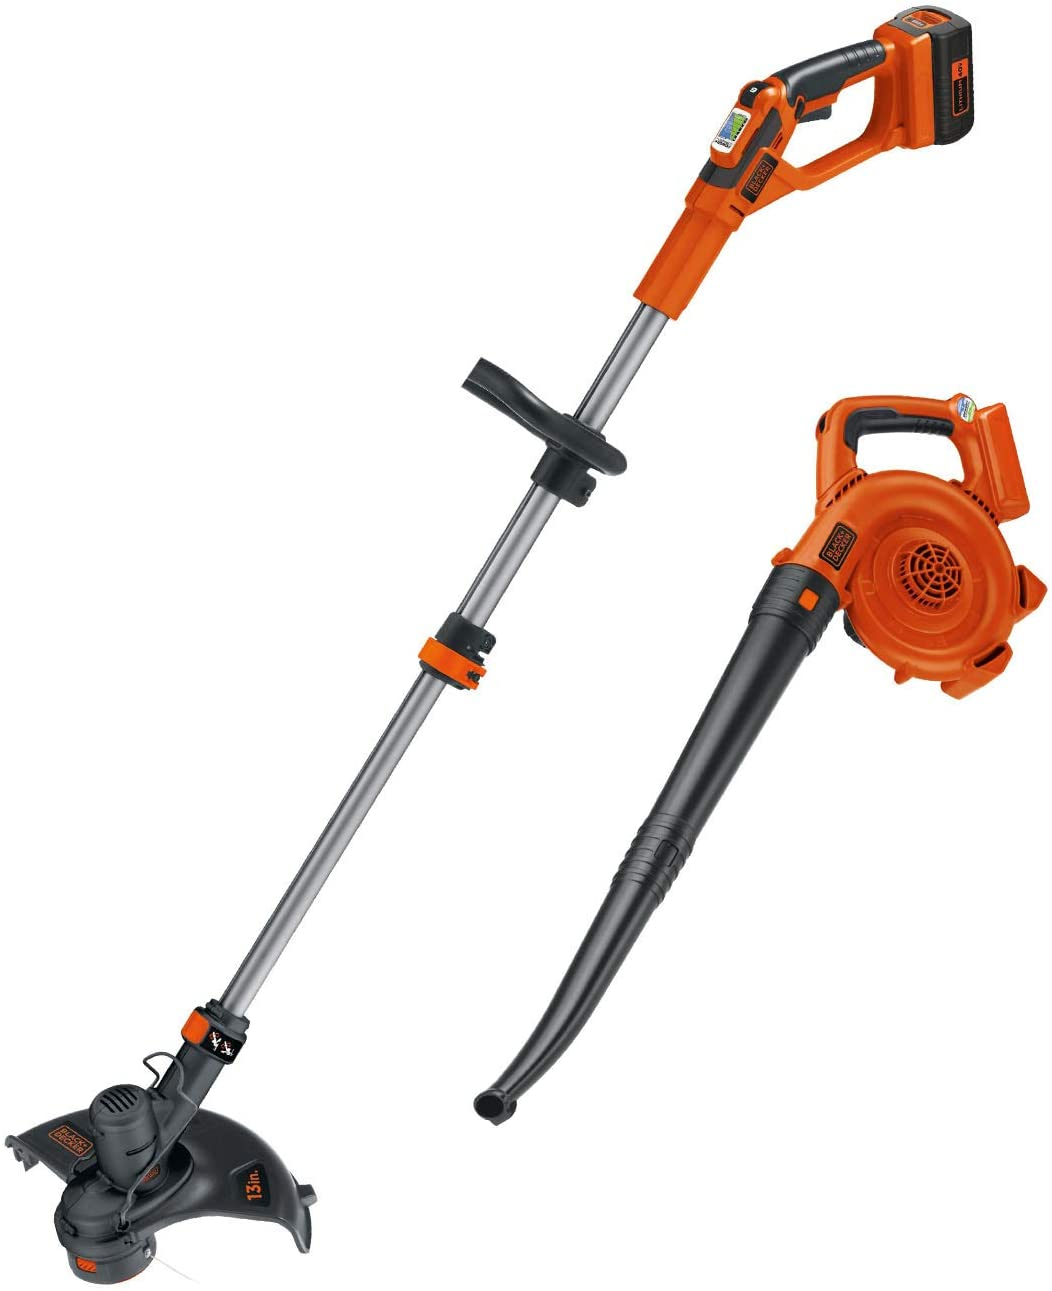 BLACK+DECKER LCC140 String Trimmer and Sweeper Combo Kit